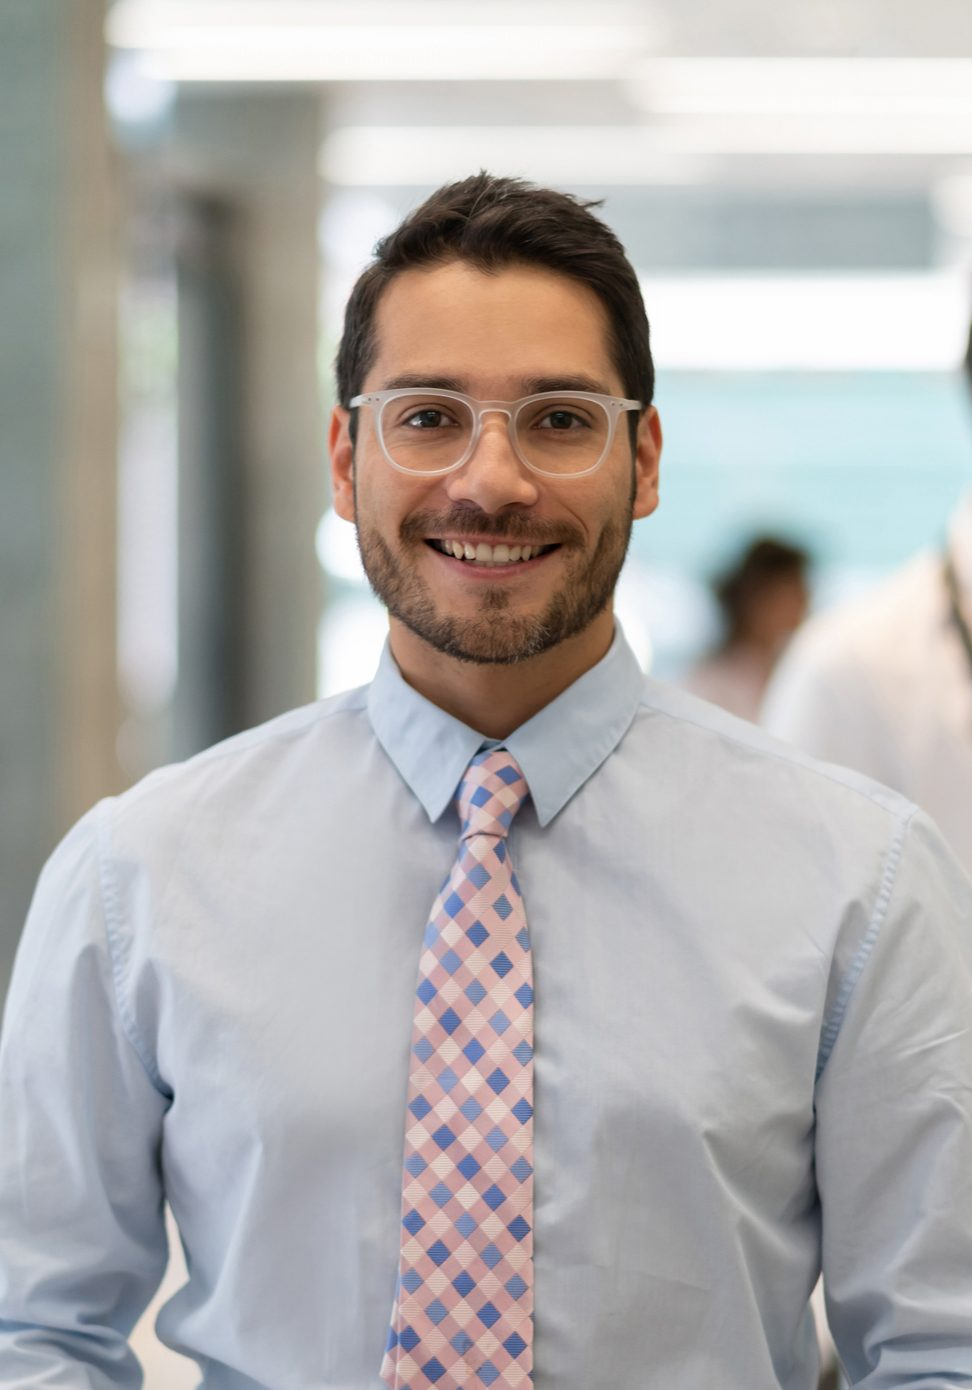 Successful hospital supervisor looking at camera smiling while doctors discuss something at background